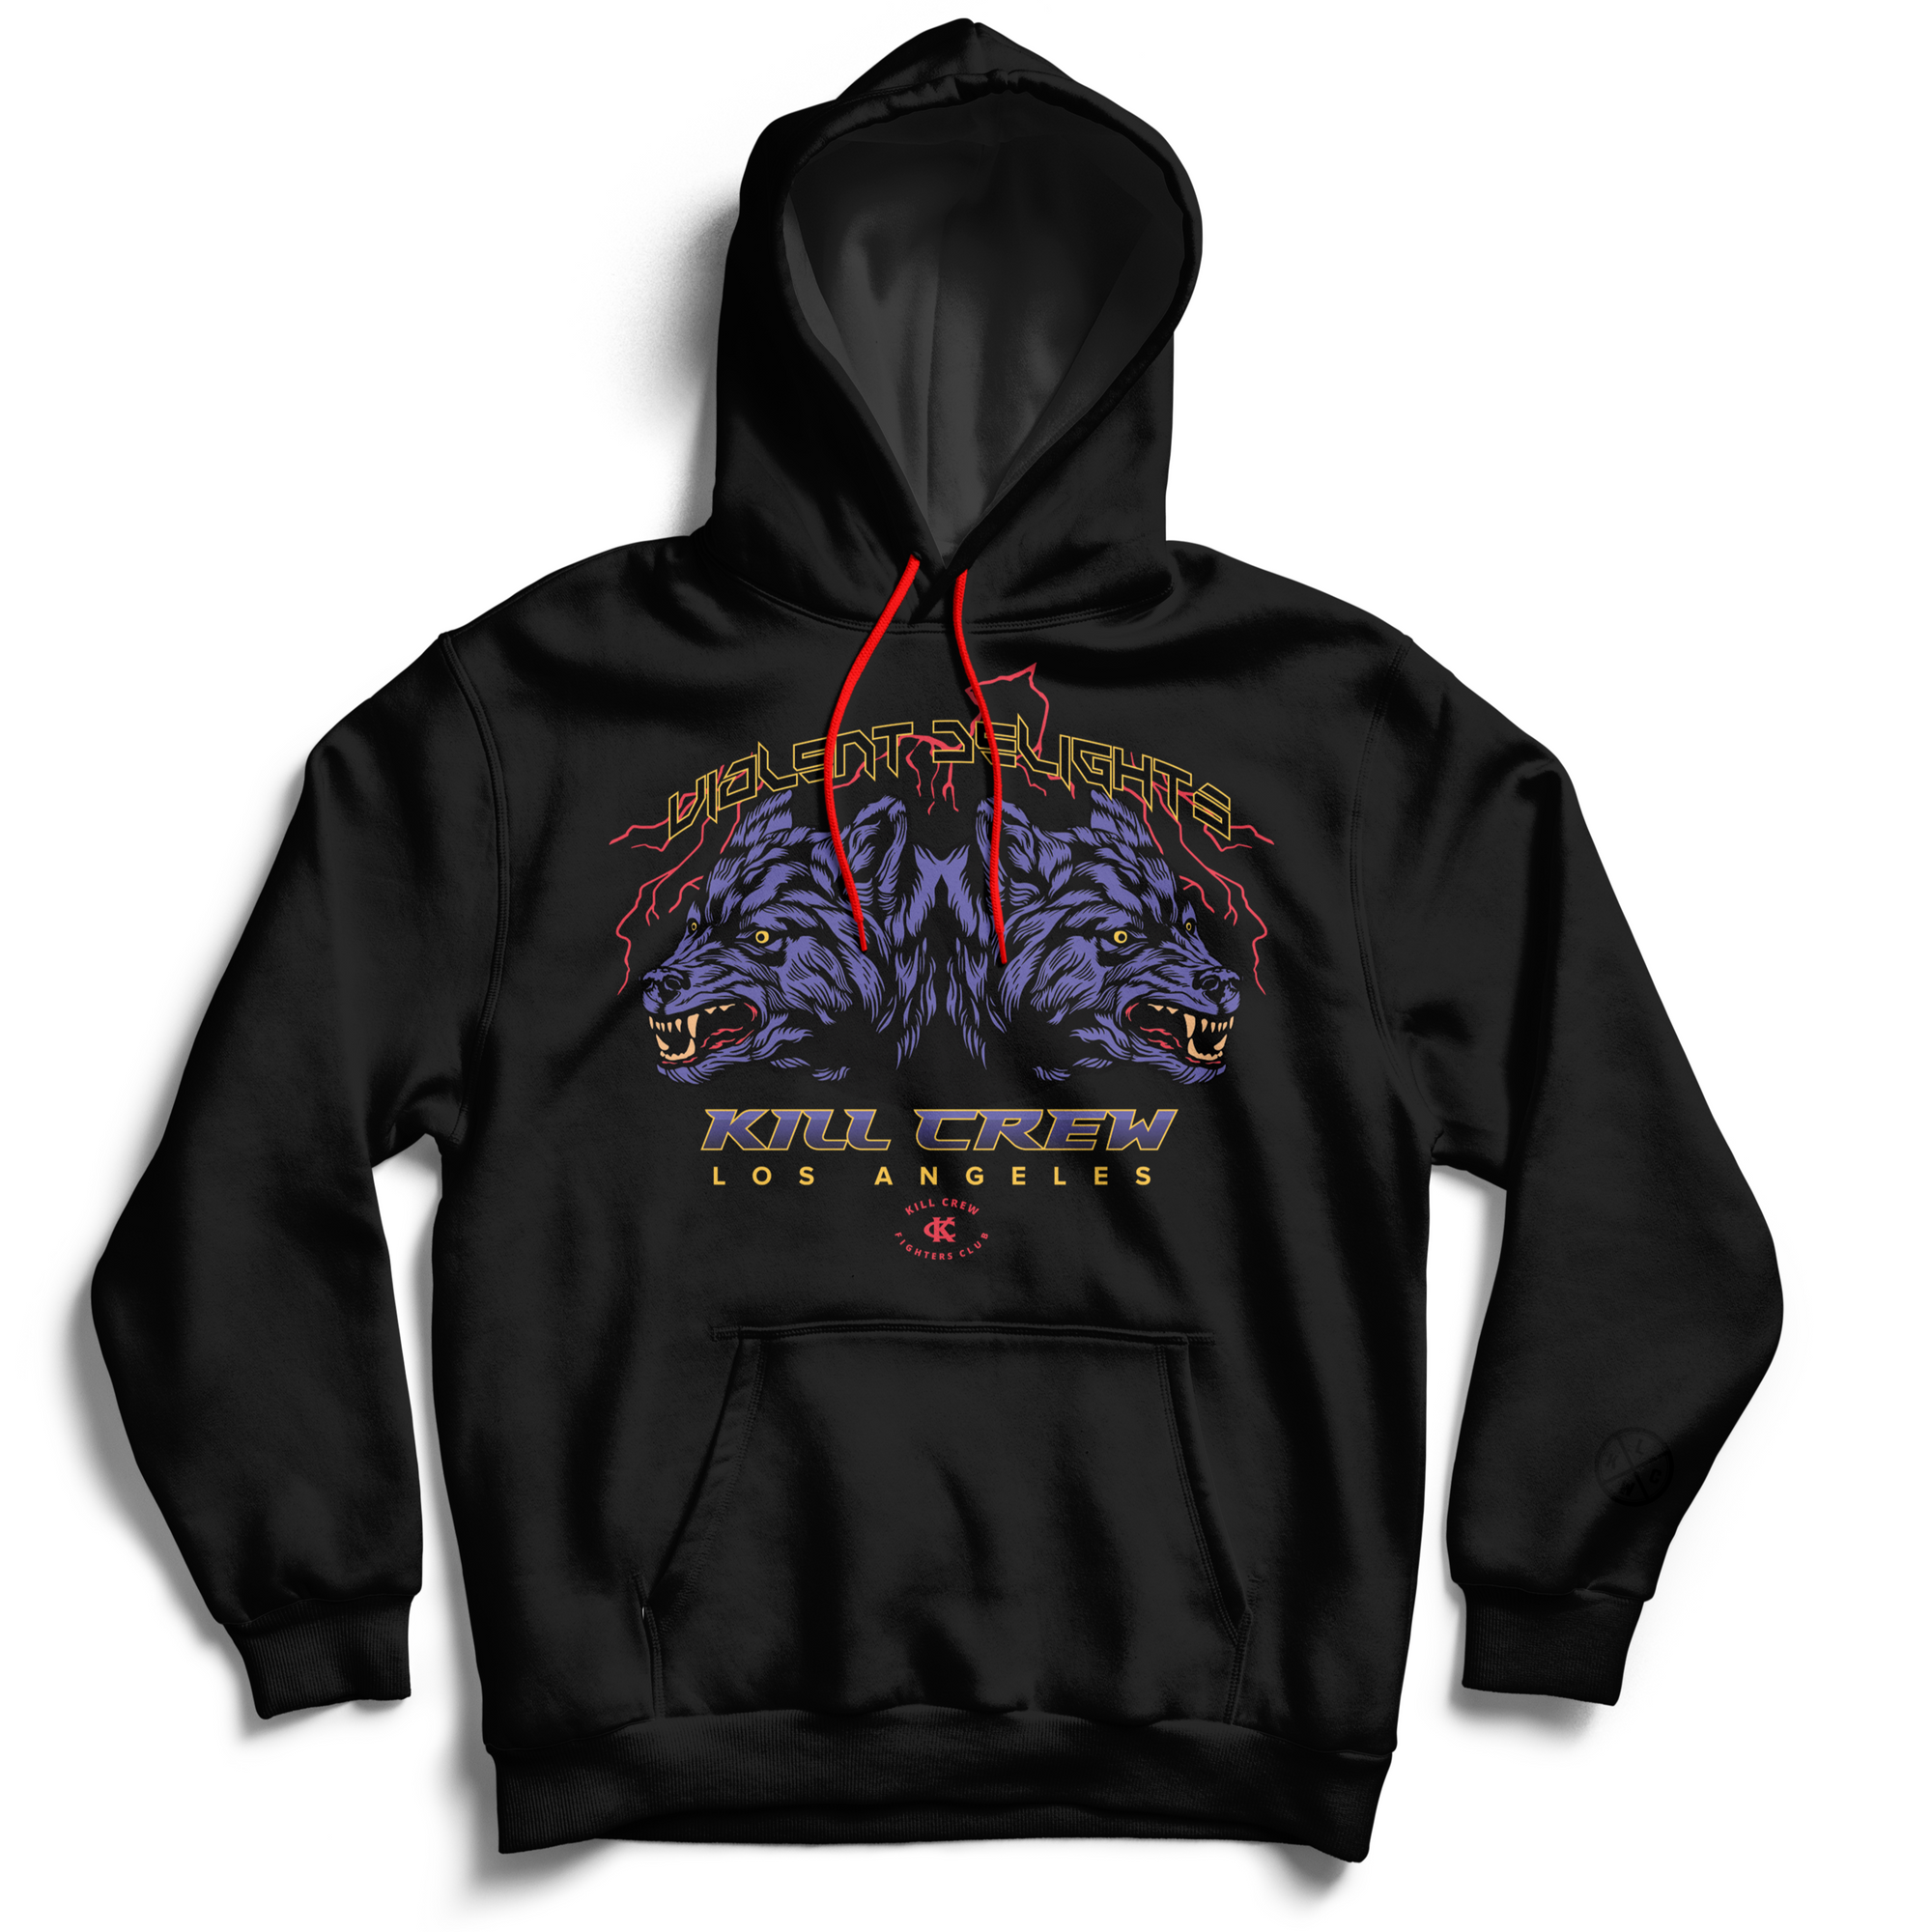 VIOLENT DELIGHTS HOODIE - BLACK